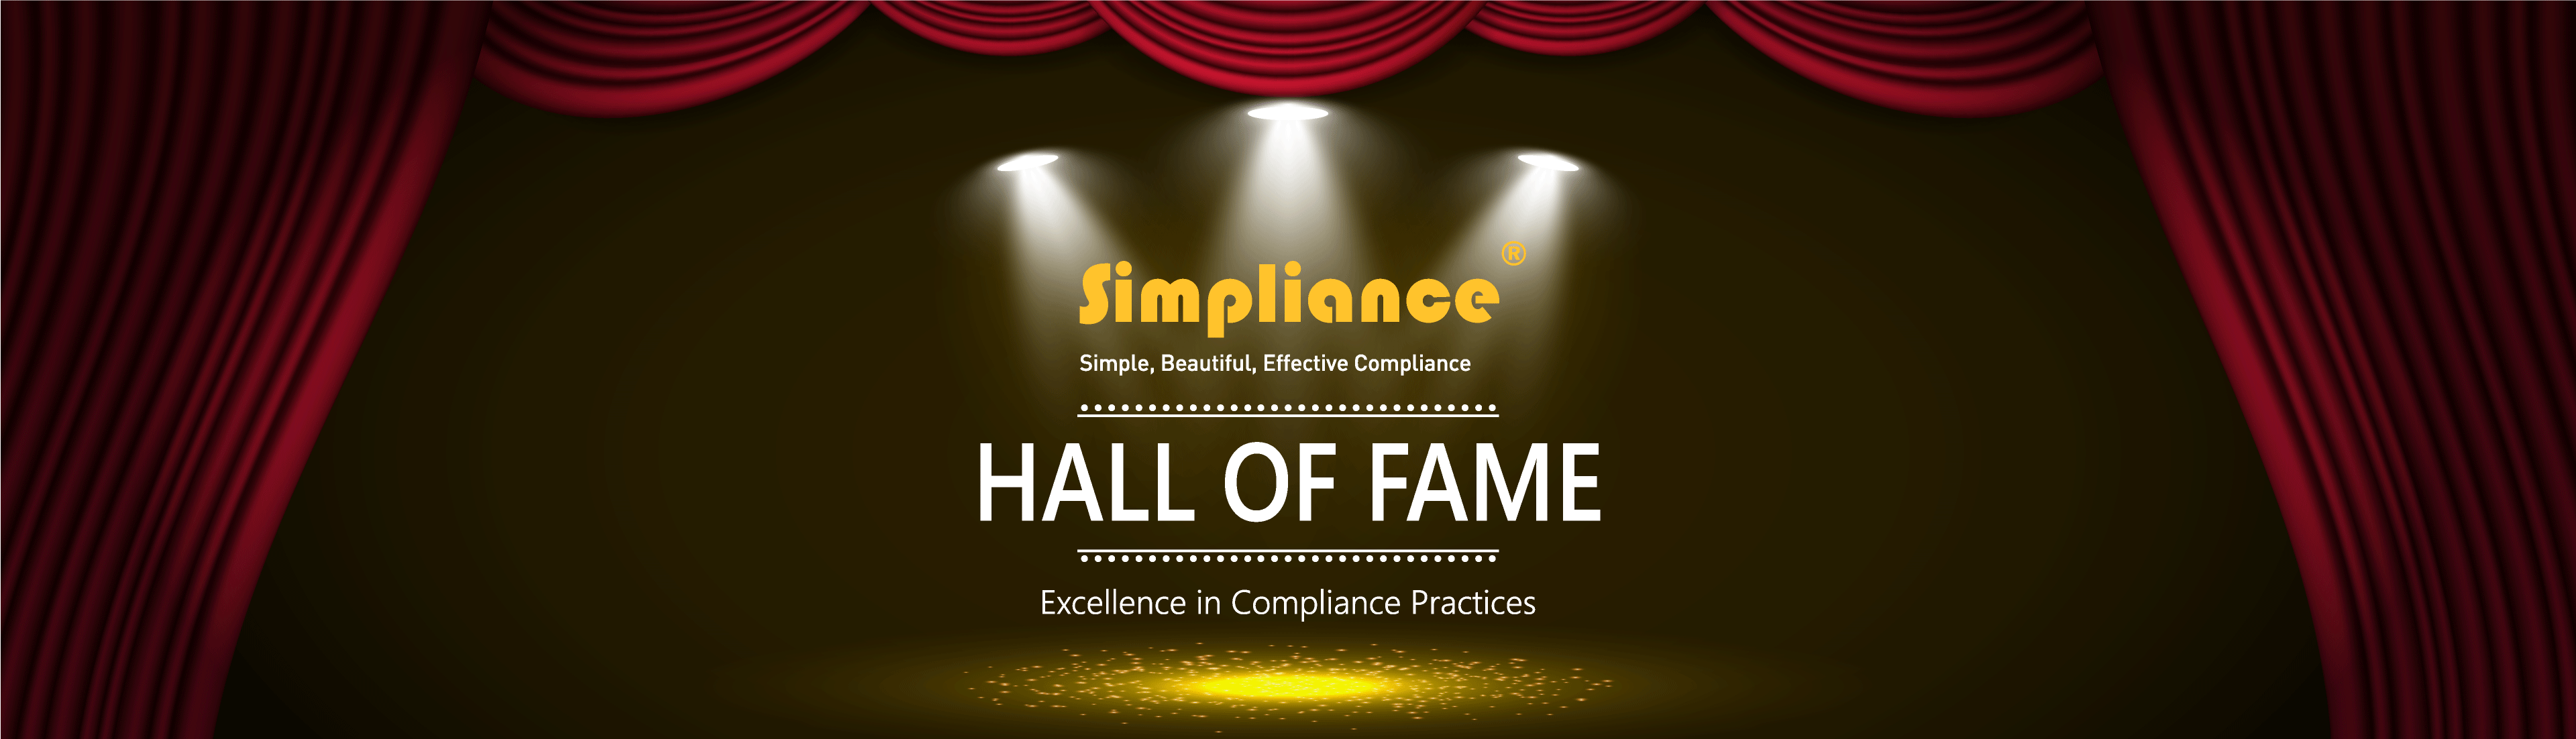 Simpliance hall of fame